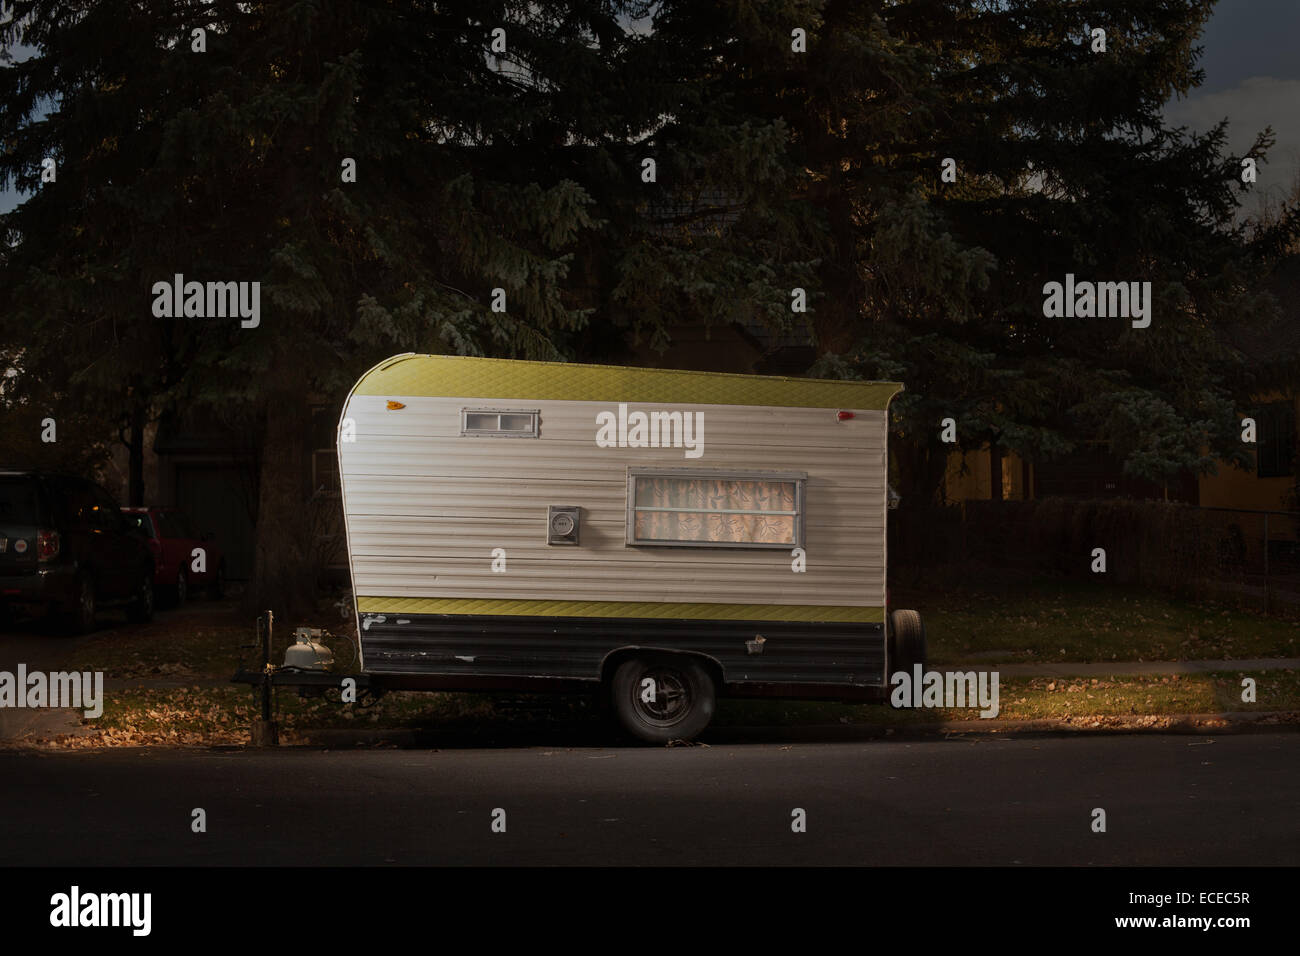 Travel trailer on street at night - Stock Image